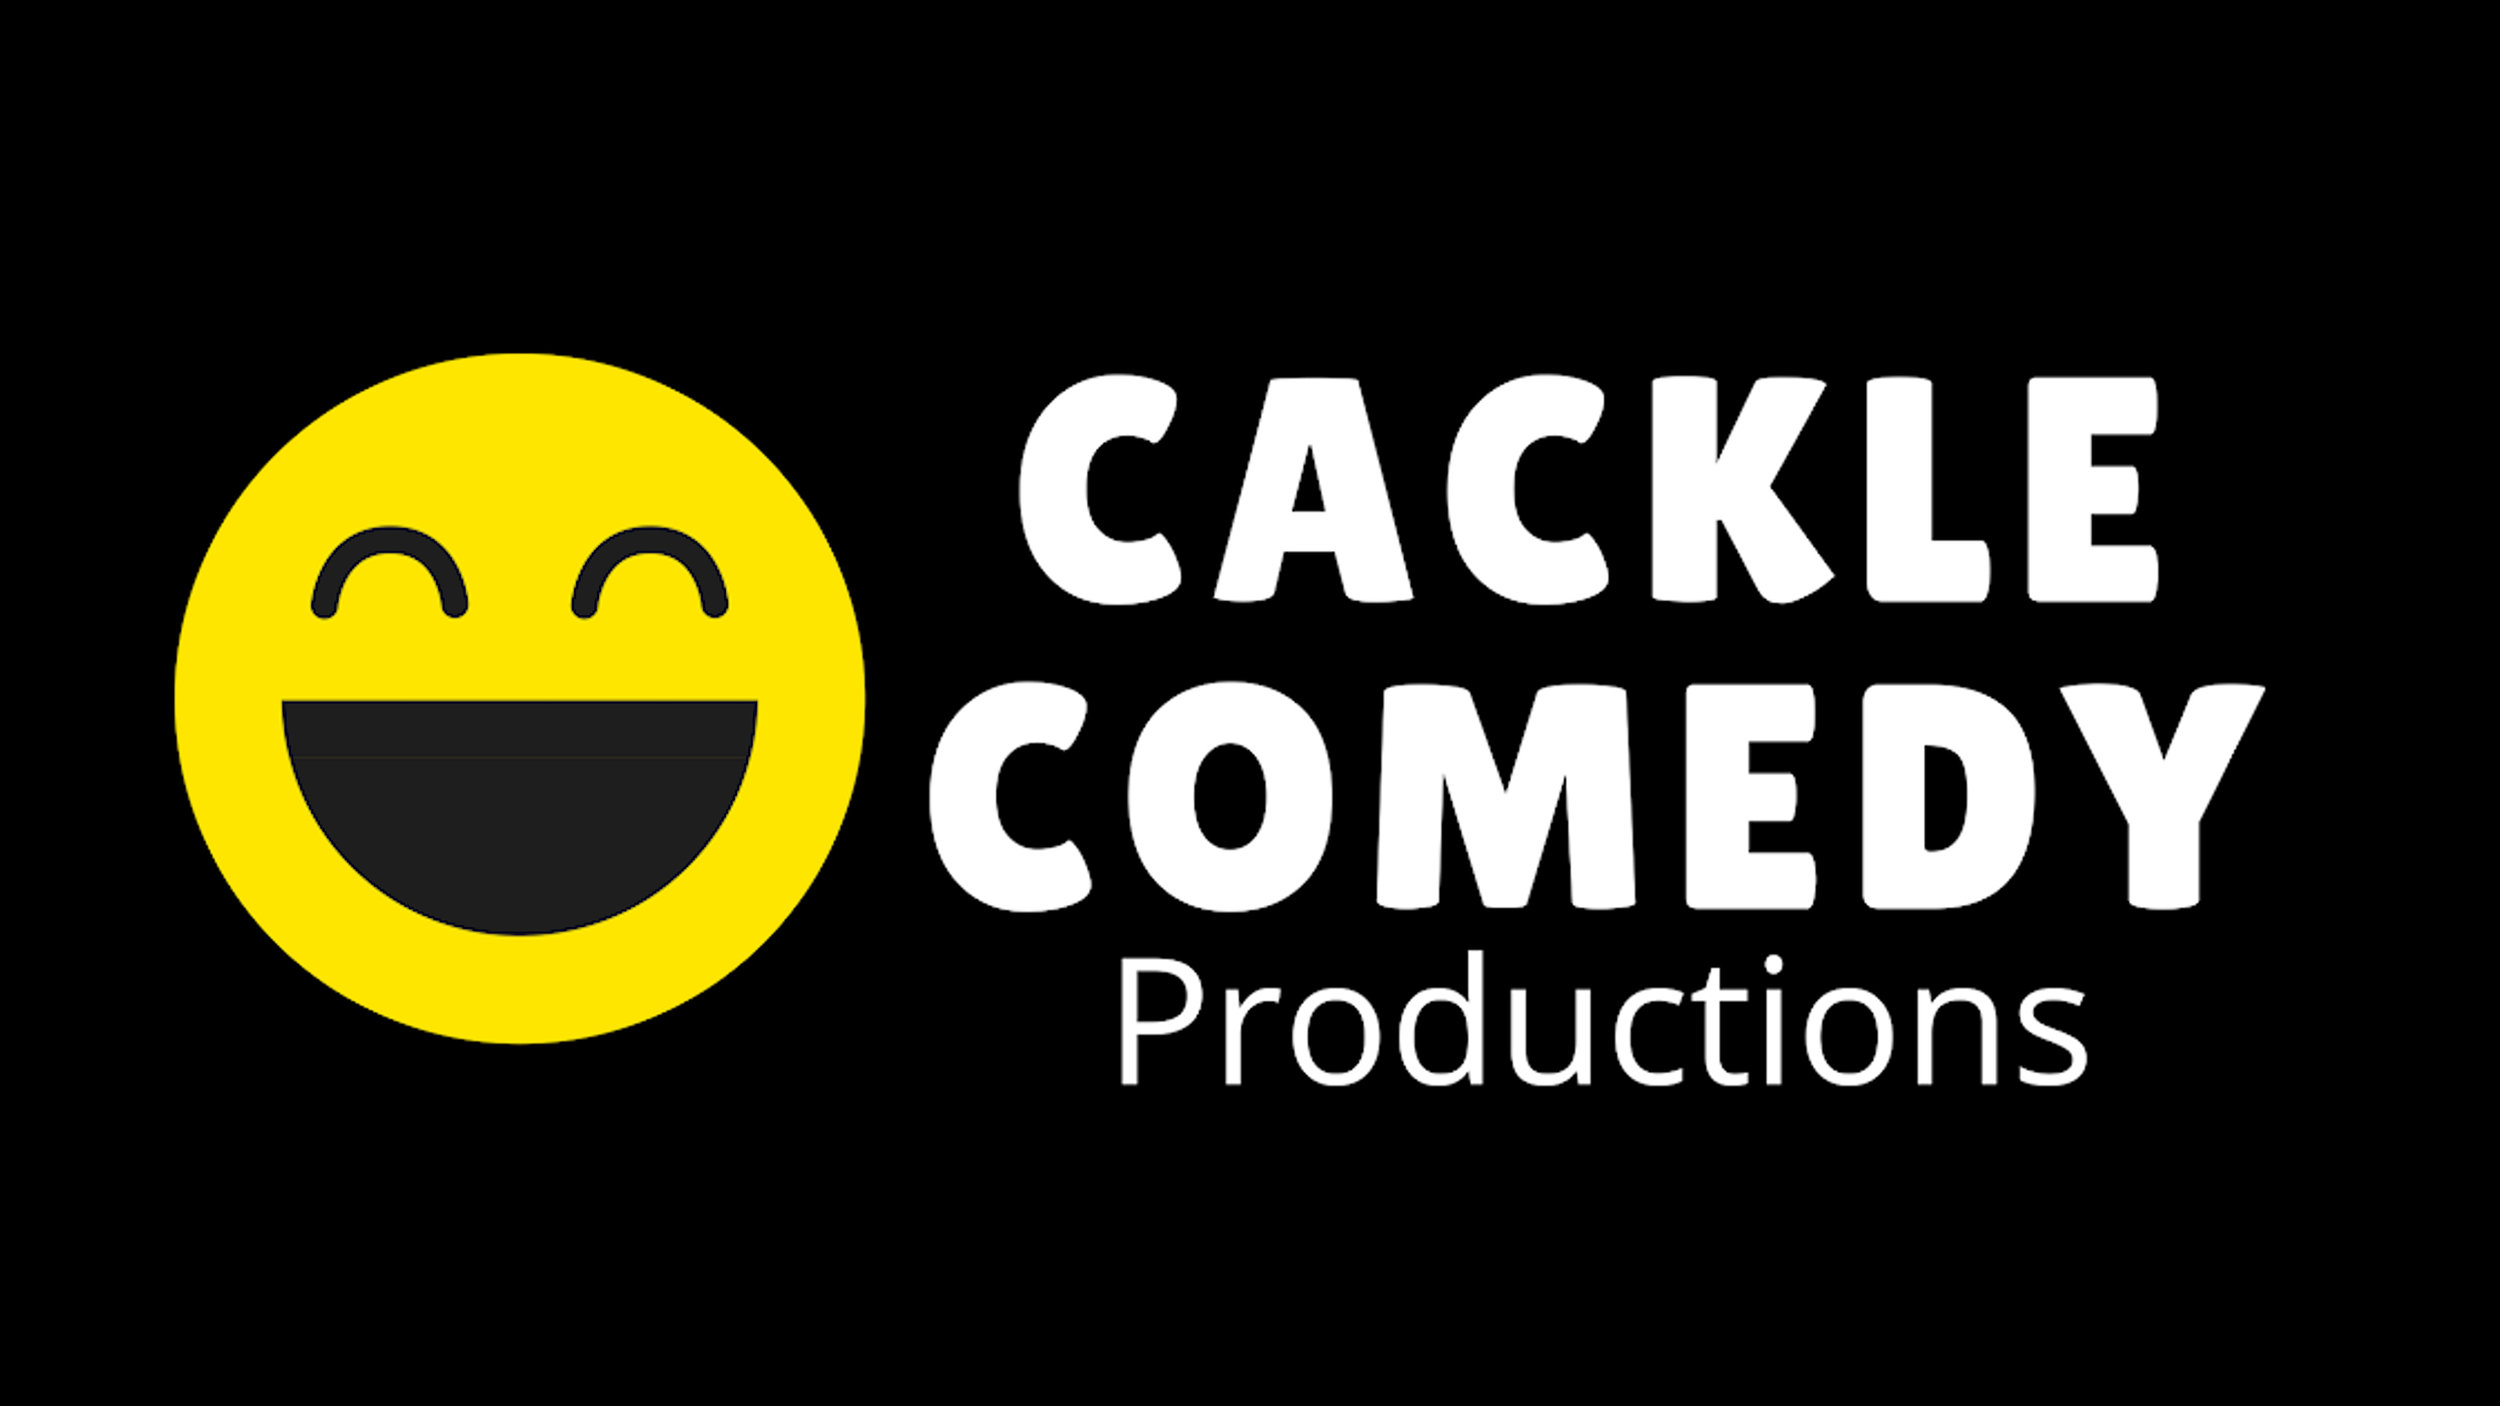 Cackle Comedy Productions Started in September 2017.